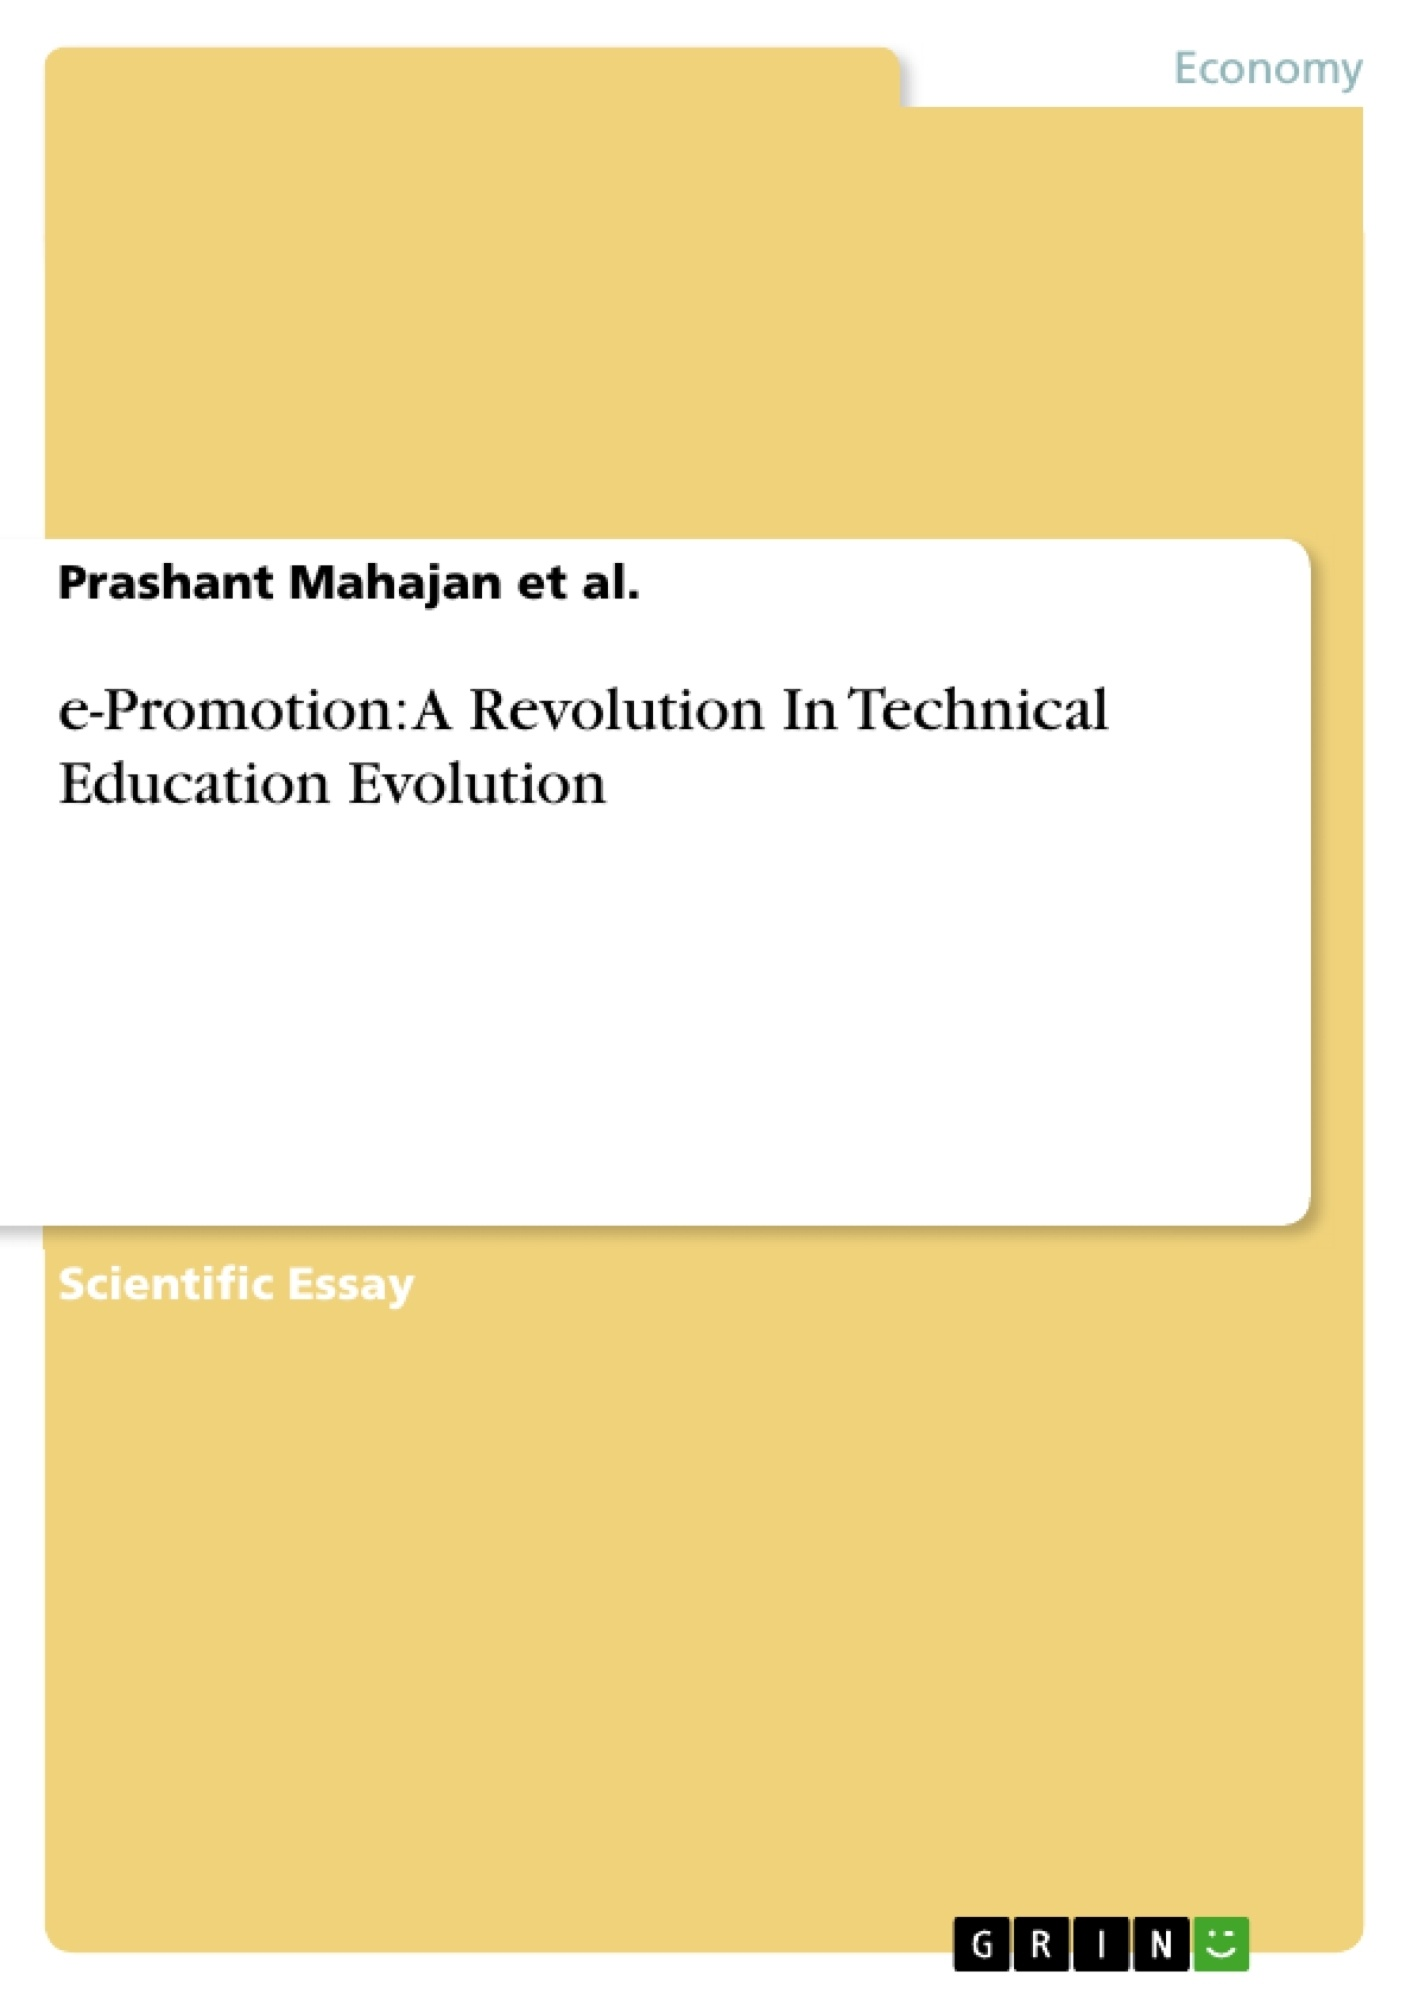 Title: e-Promotion: A Revolution In Technical Education Evolution